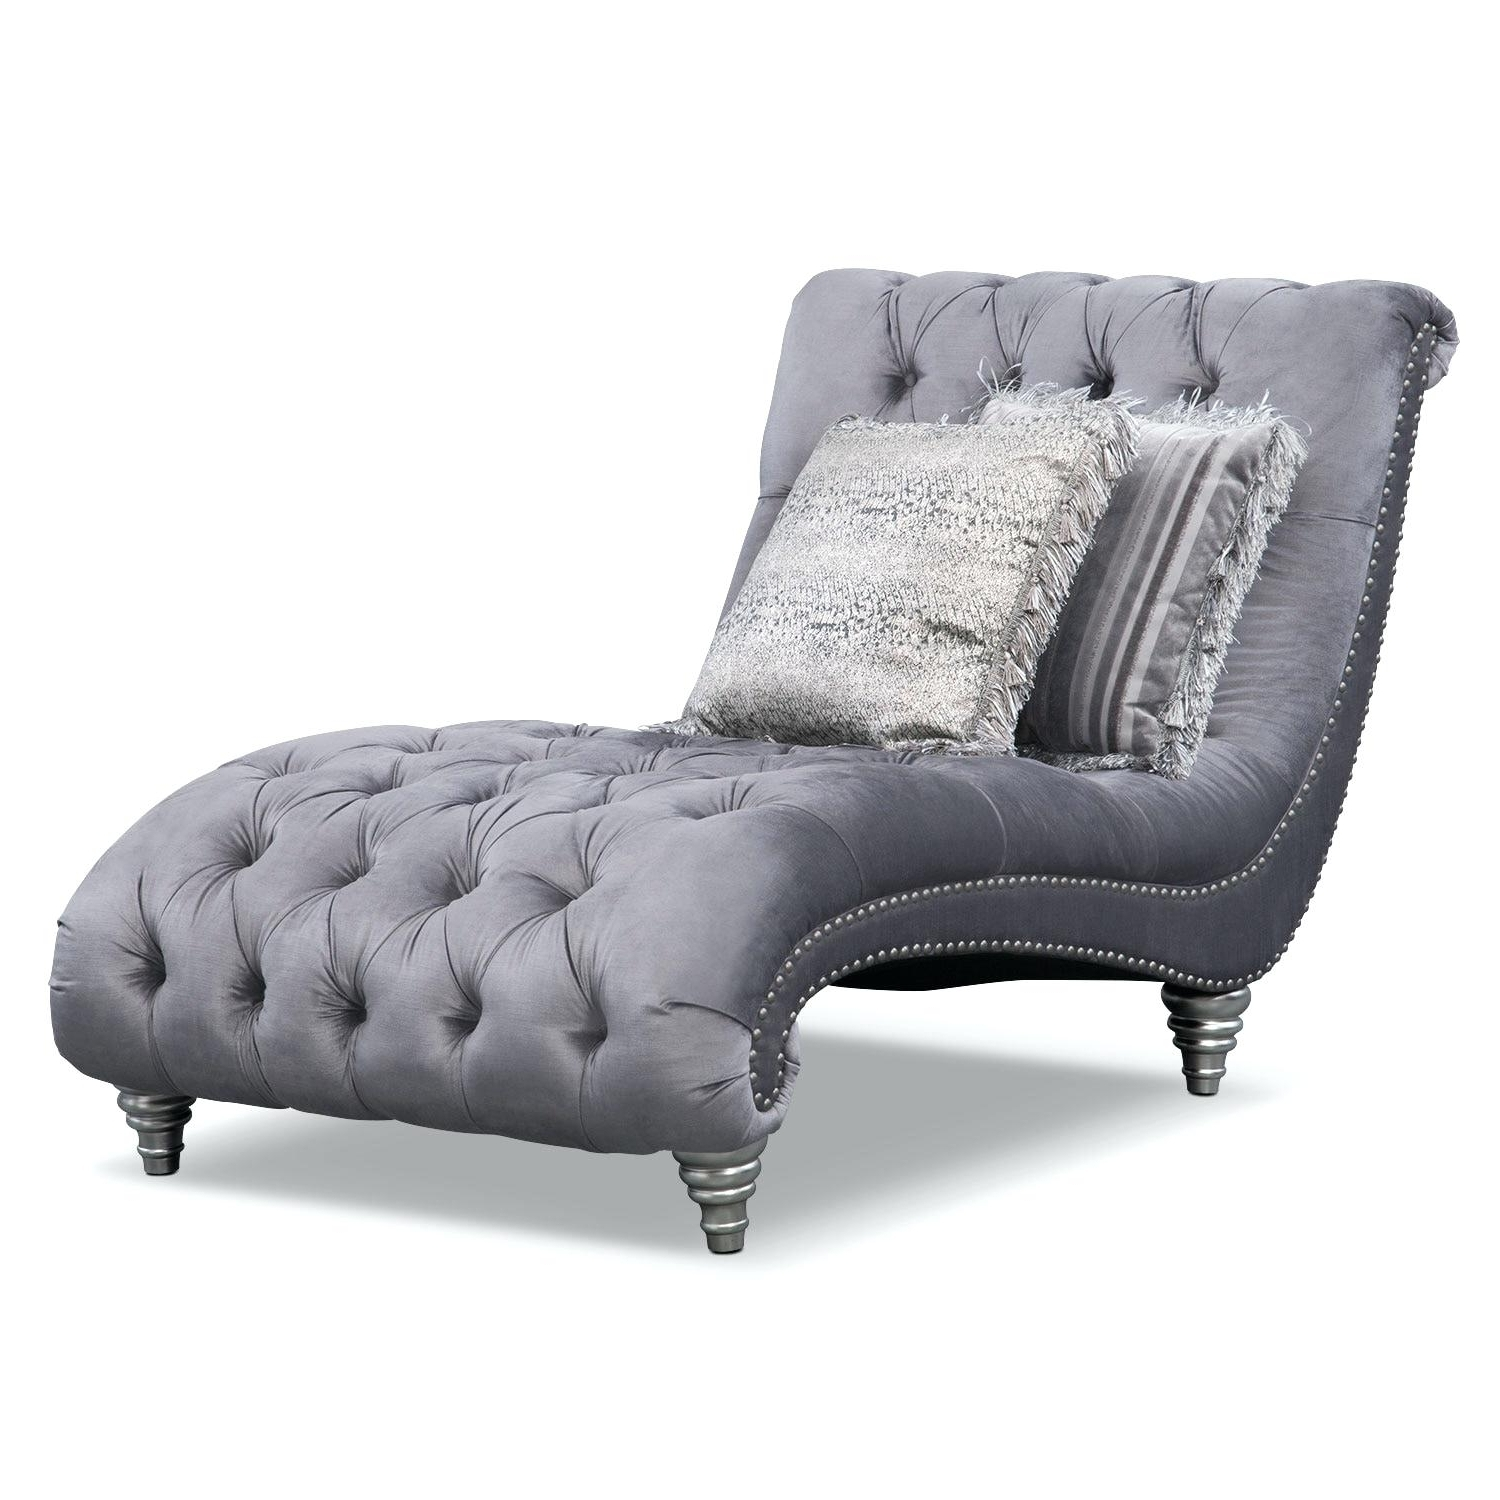 Fashionable Grey Chaise Lounges Inside Grey Chaise Lounge Chair • Lounge Chairs Ideas (View 3 of 15)